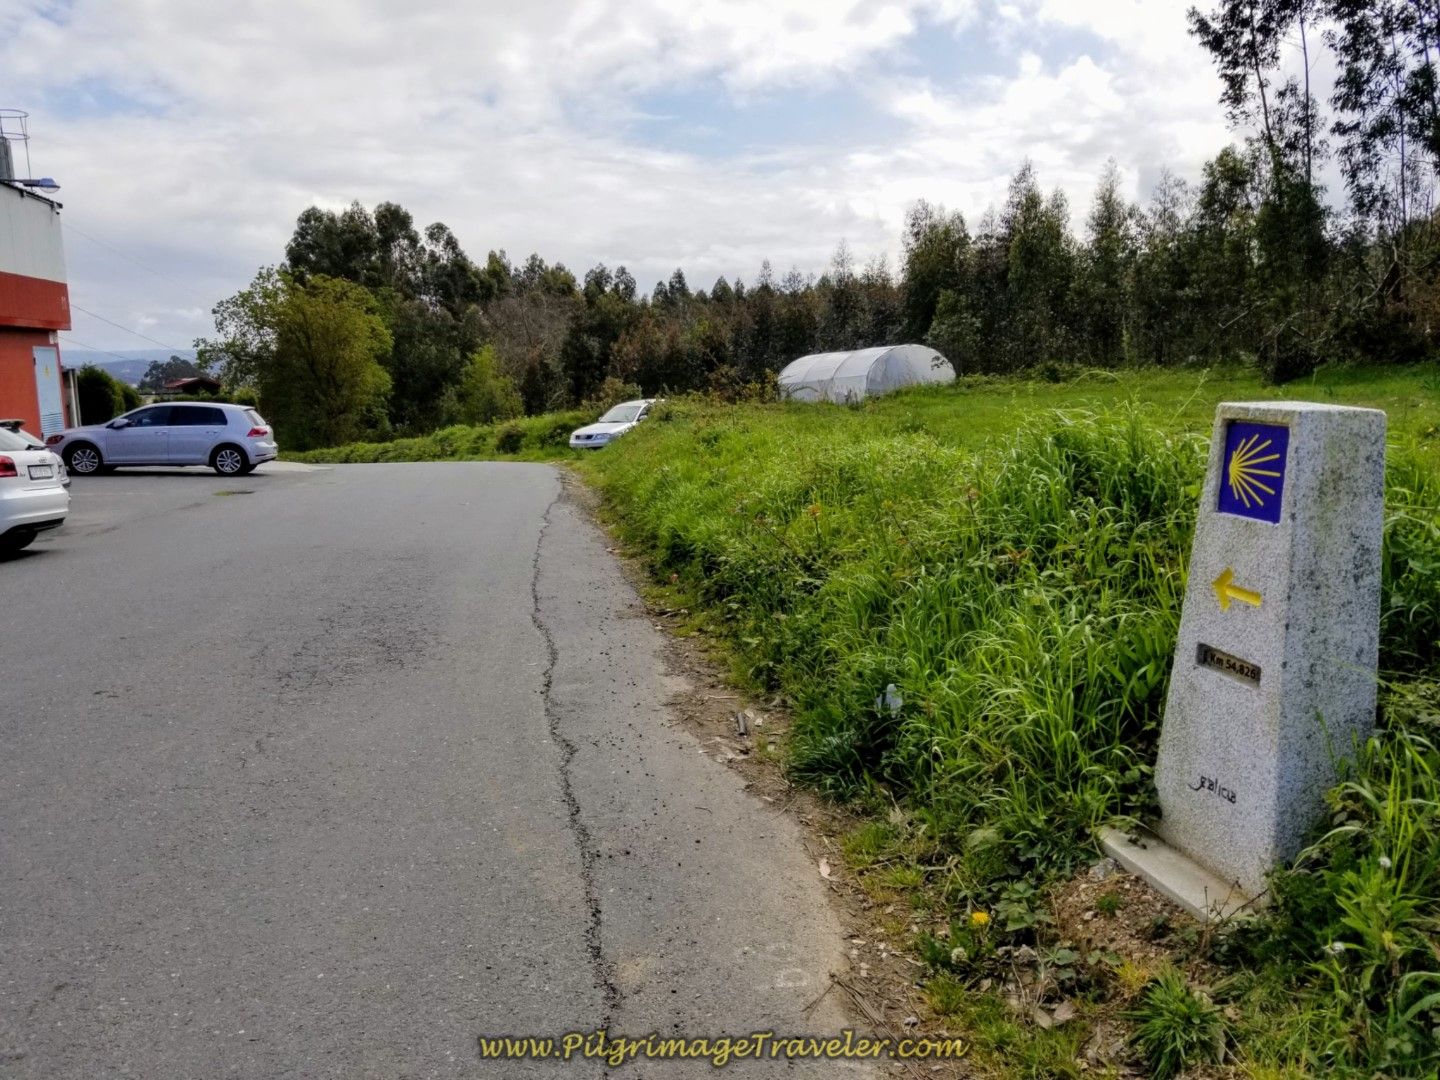 54.8 Kilometer Marker on day one of the La Coruña Arm of the Camino Inglés